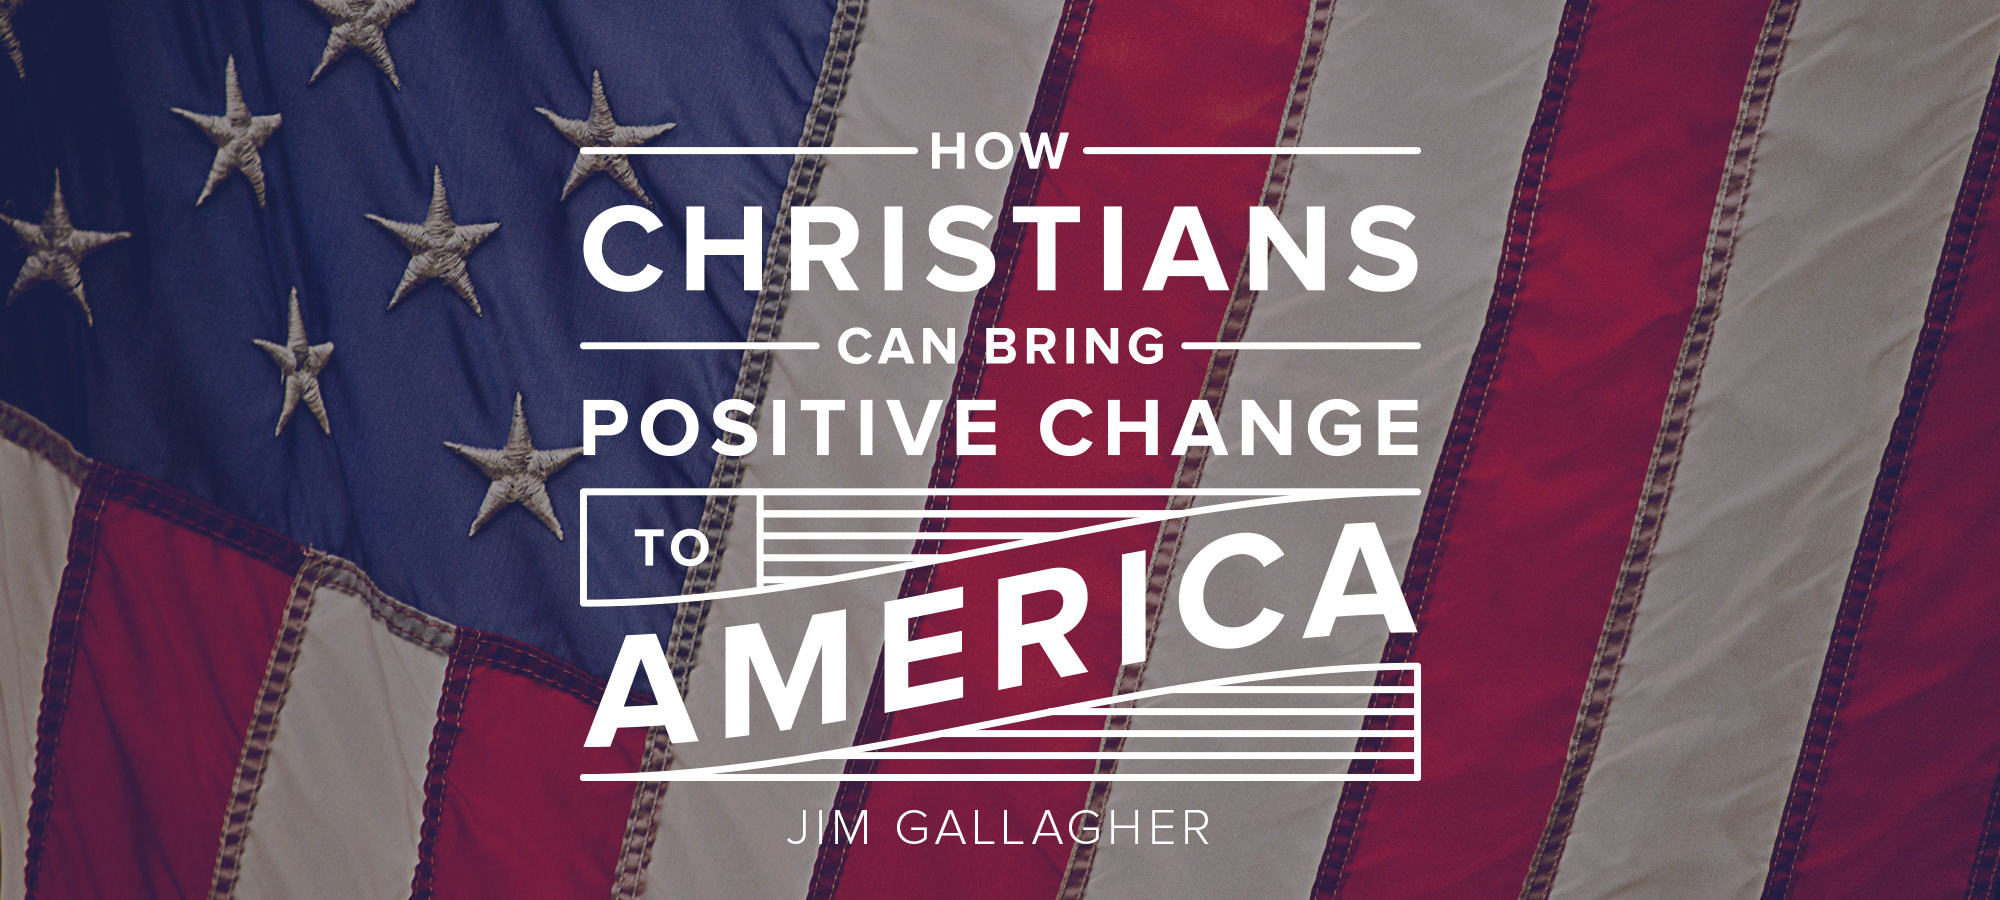 How Christians Can Bring Positive Change to America